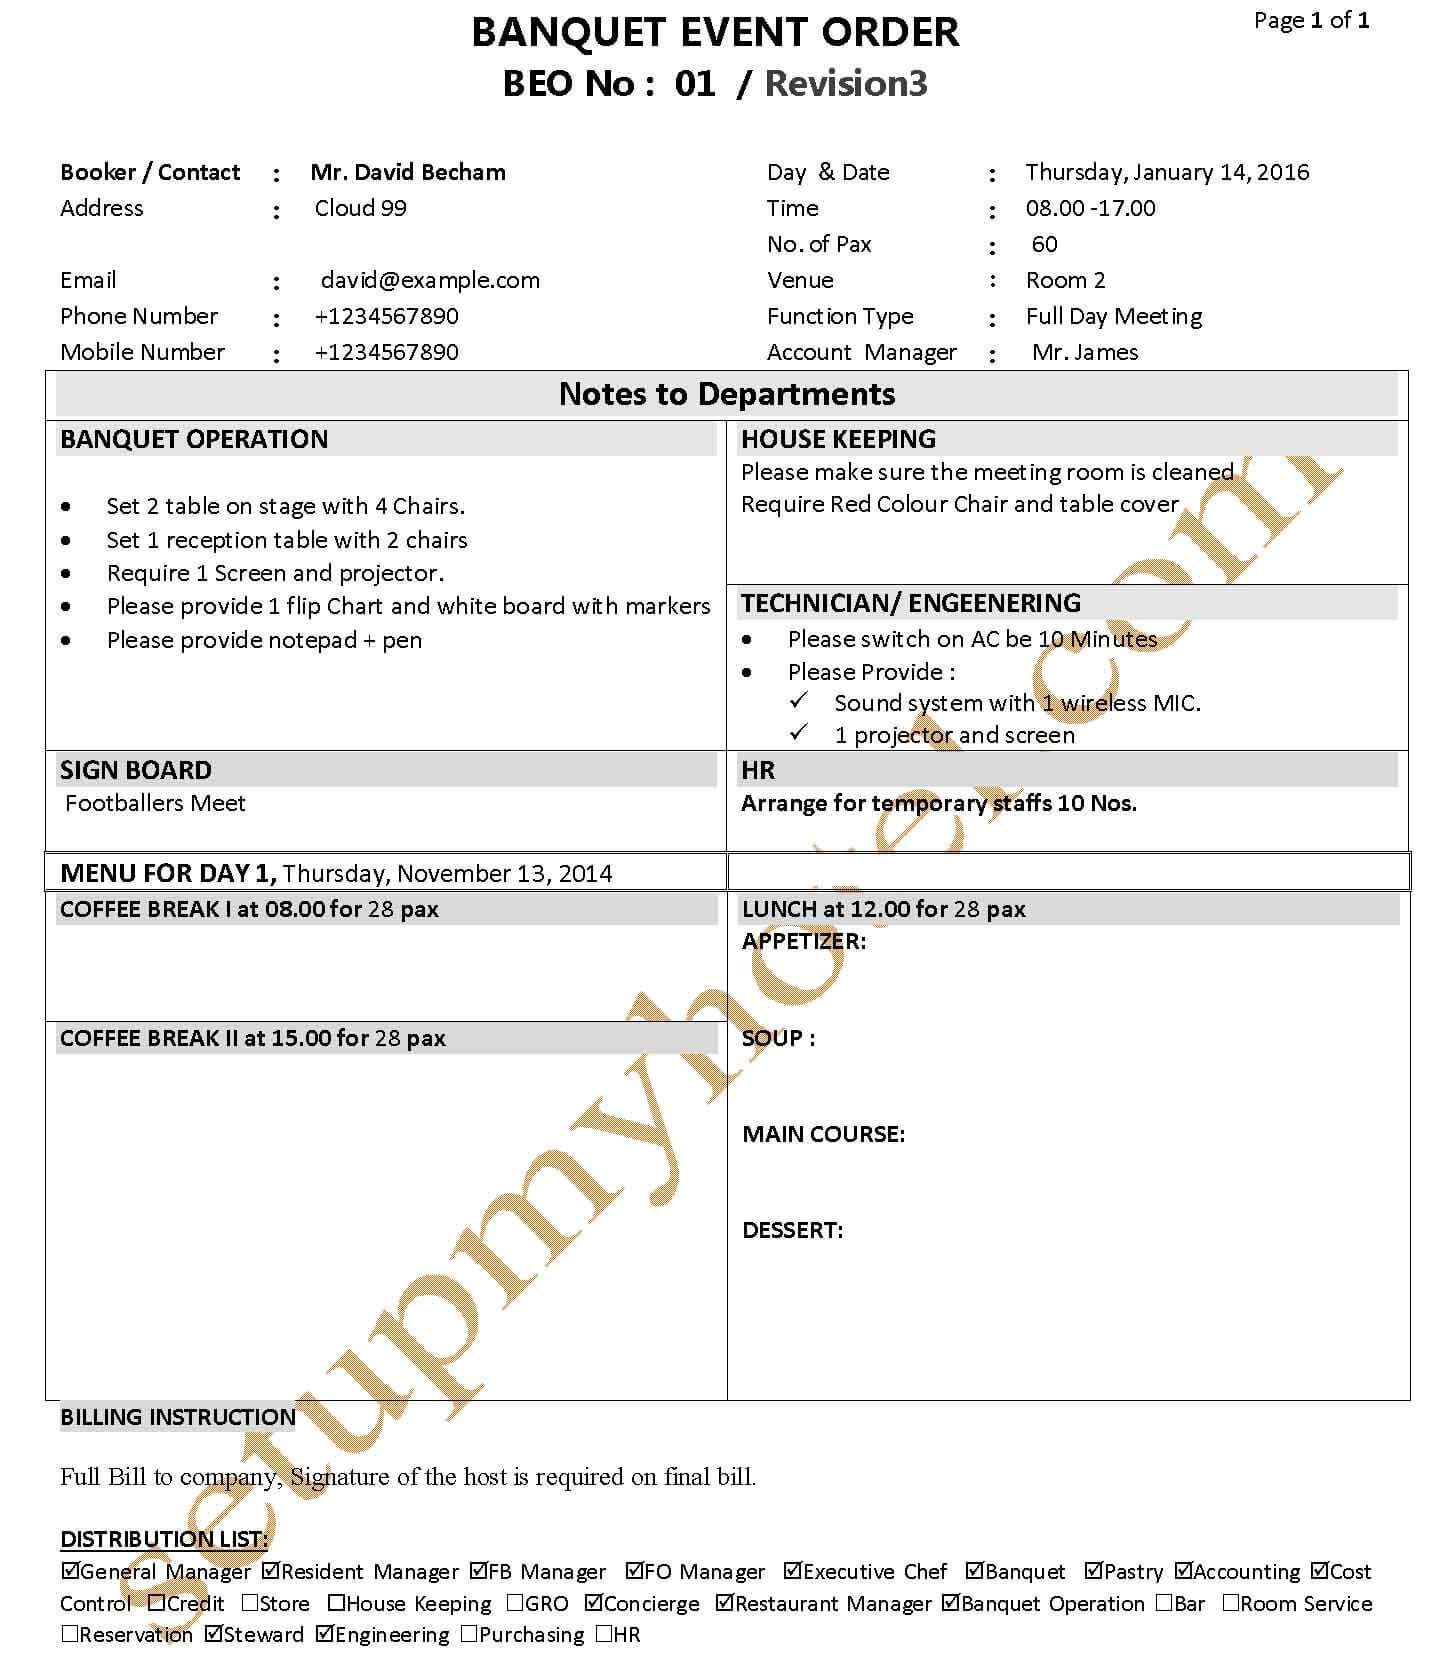 Banquet Function Plan Event Order Form FP BEO Sample – Event Order Form